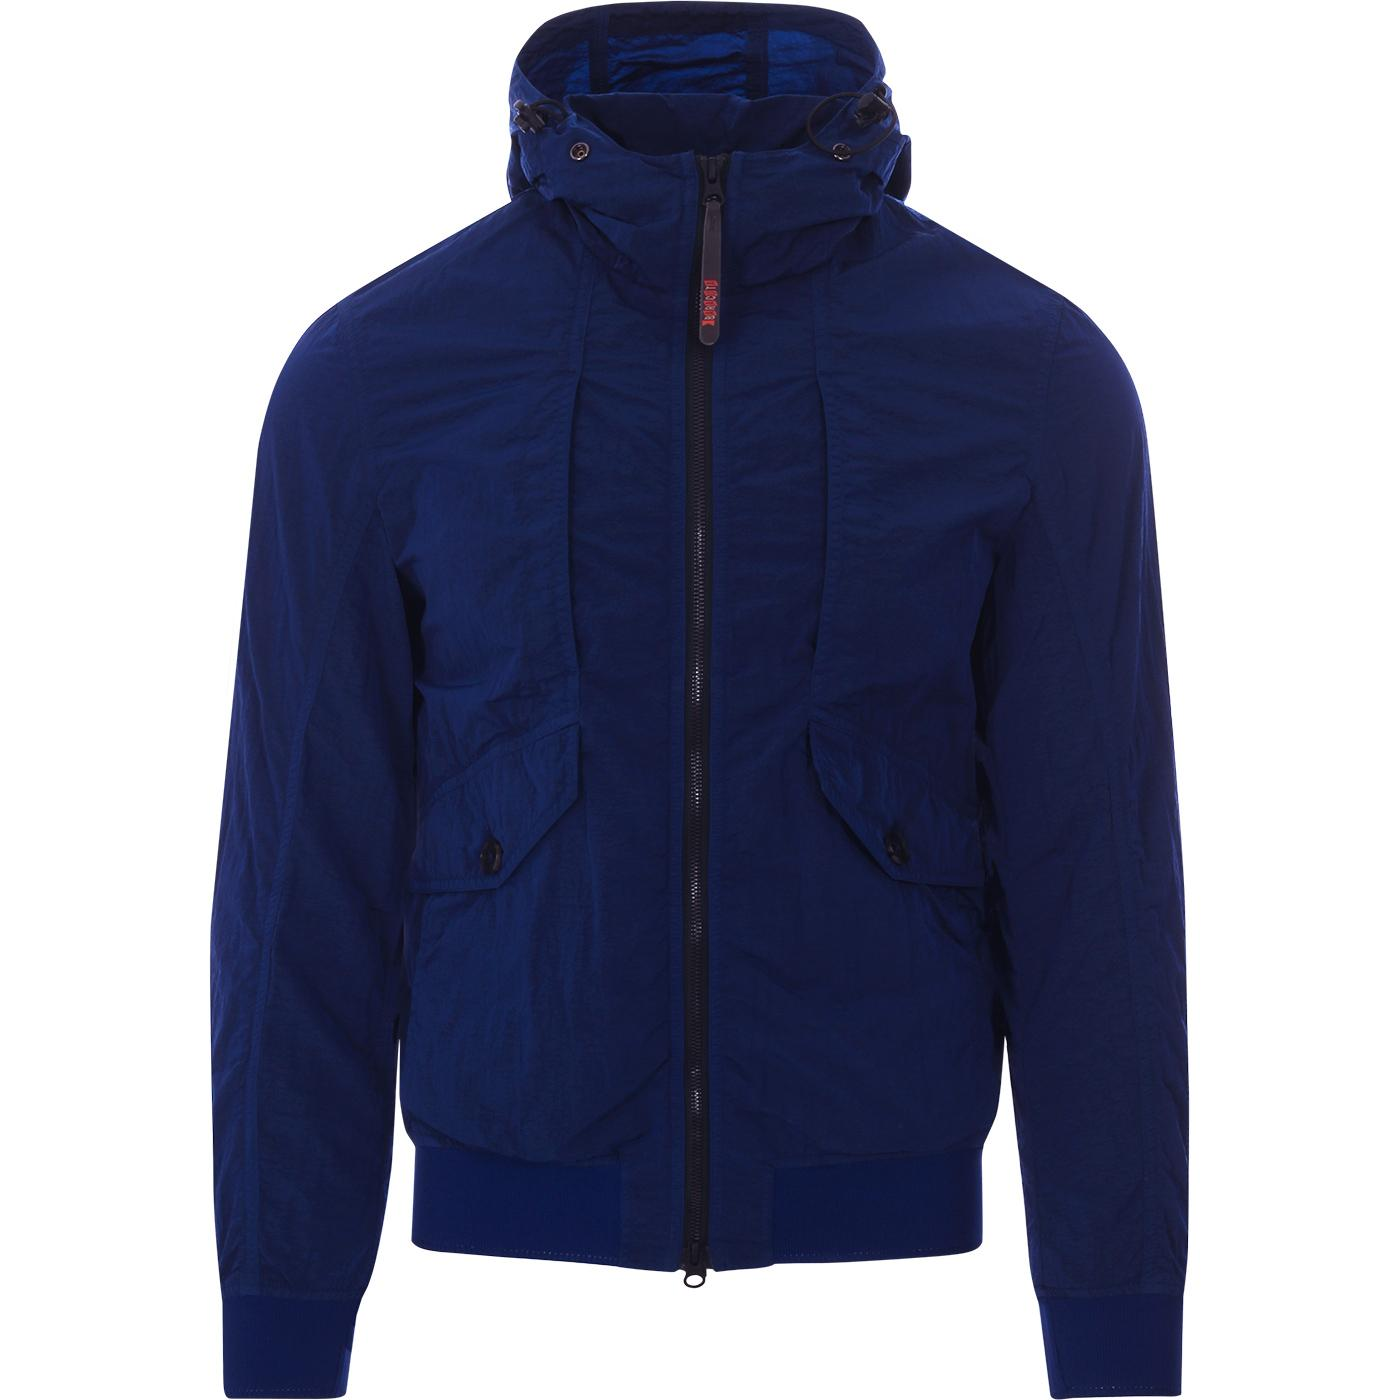 BARACUTA Four Pocket Garment Dyed Hooded Jacket I